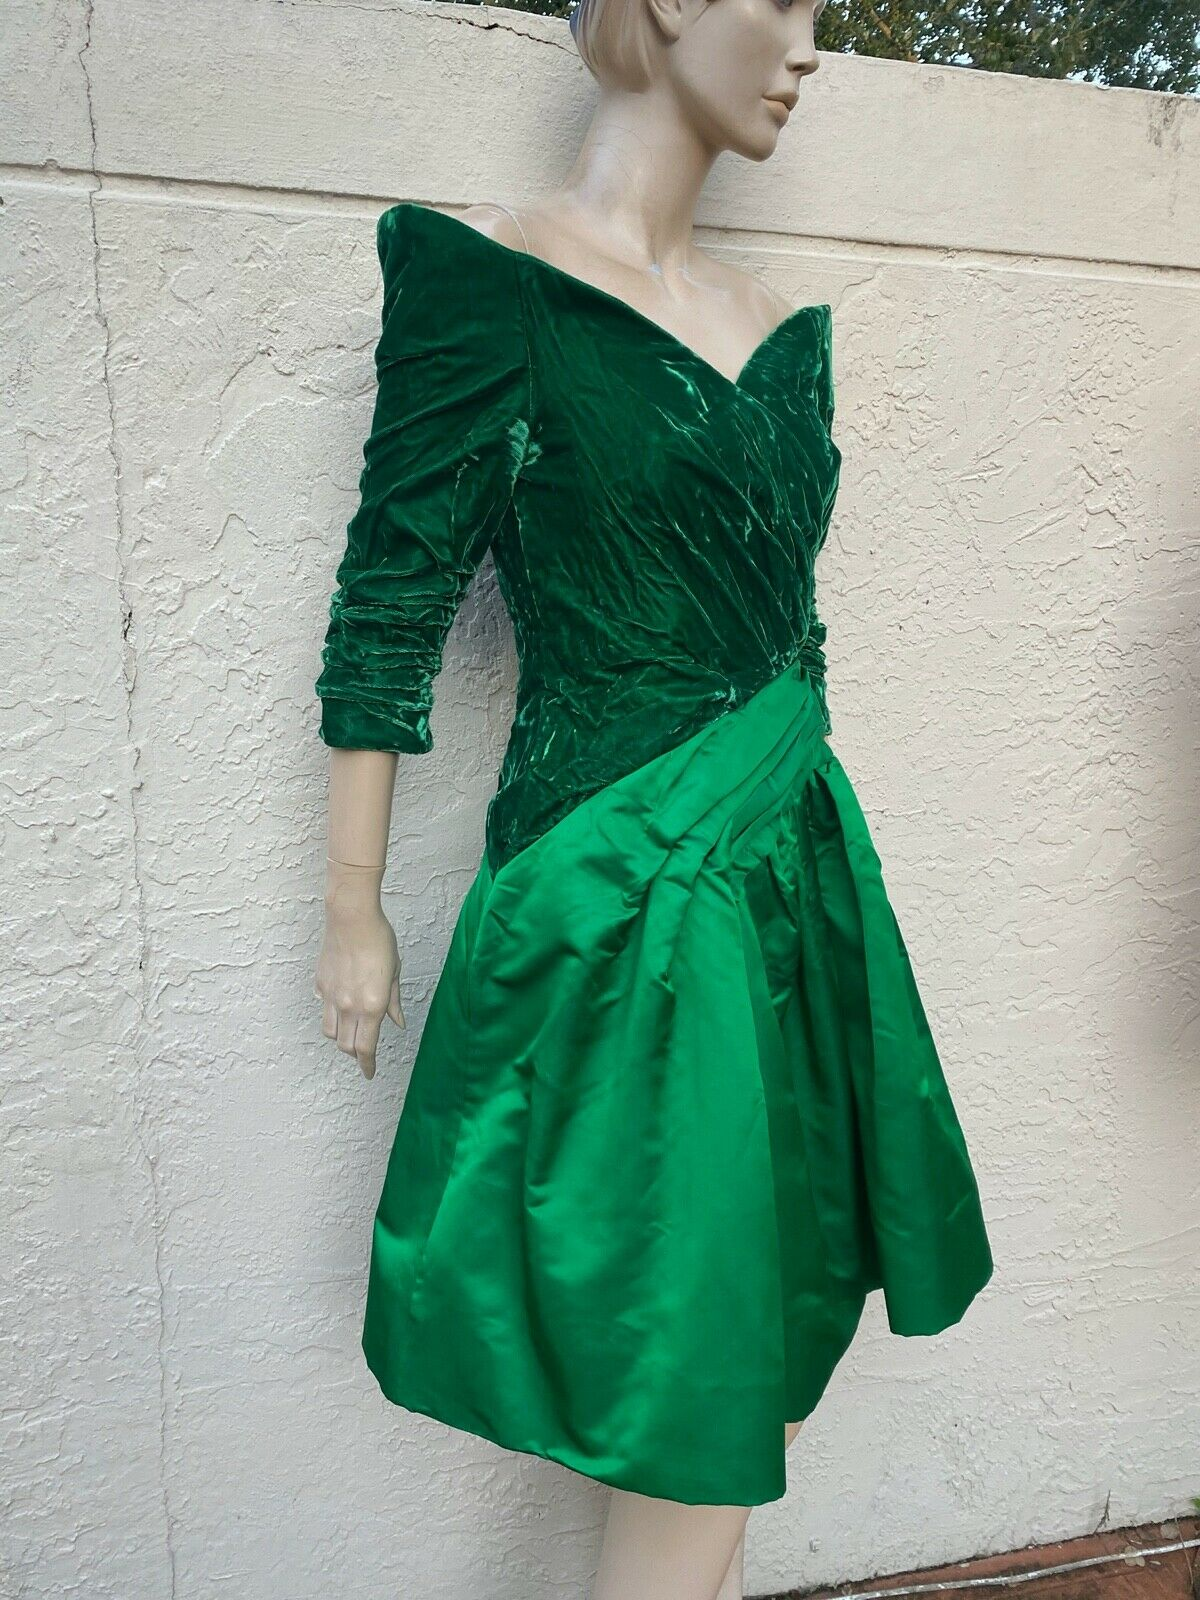 ARNOLD SCAASI BOUTIQUE VINTAGE 80's OFF THE SHOUL… - image 4